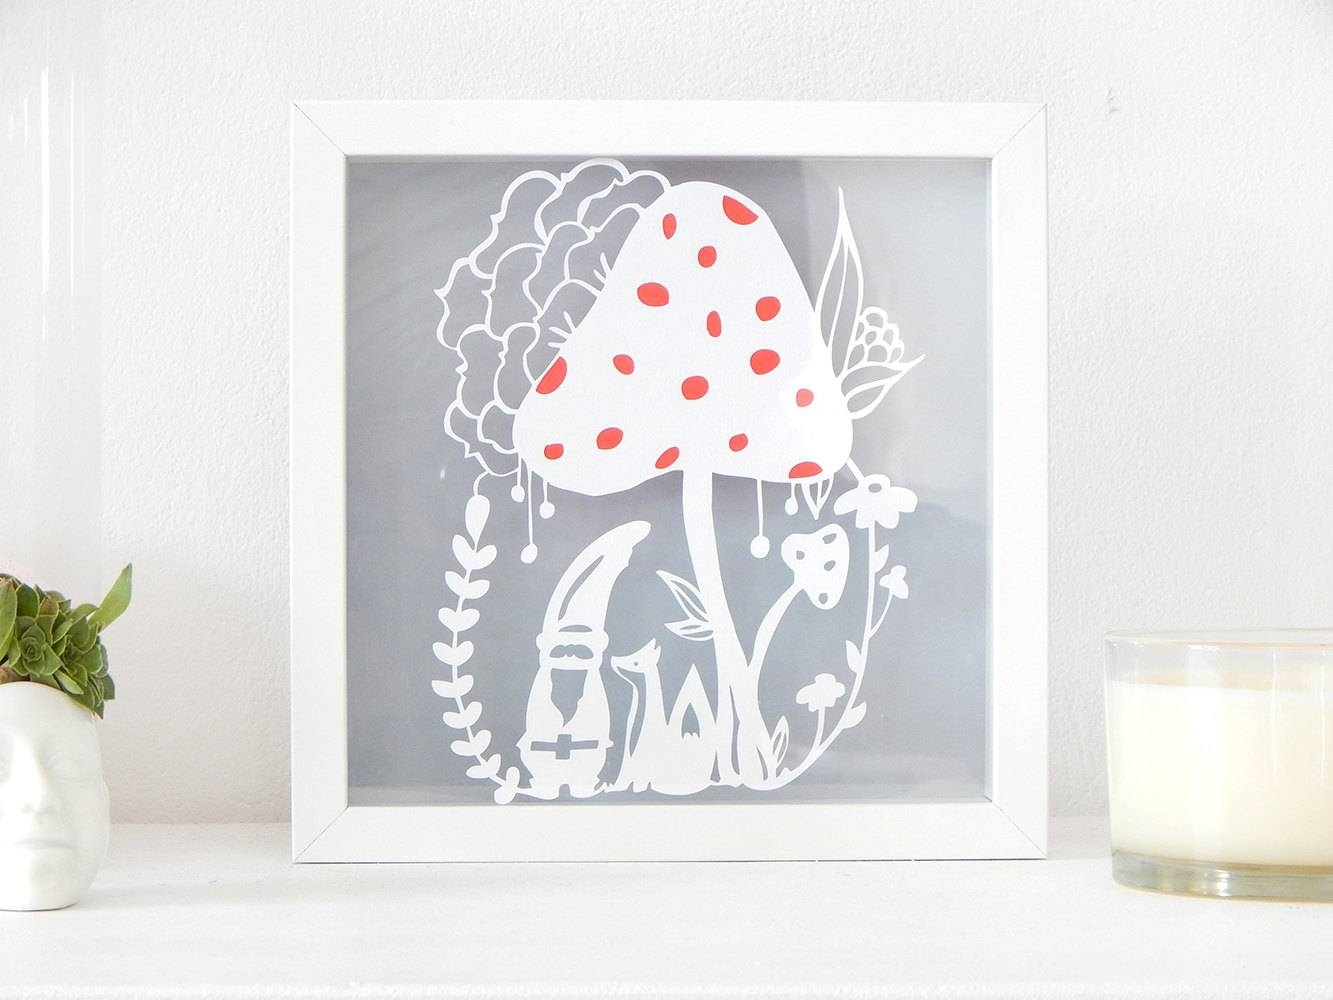 Woodland Scene Art. Gnome And Fox Paper Cut Out. Mushroom With Recent Mushroom Wall Art (Gallery 4 of 20)